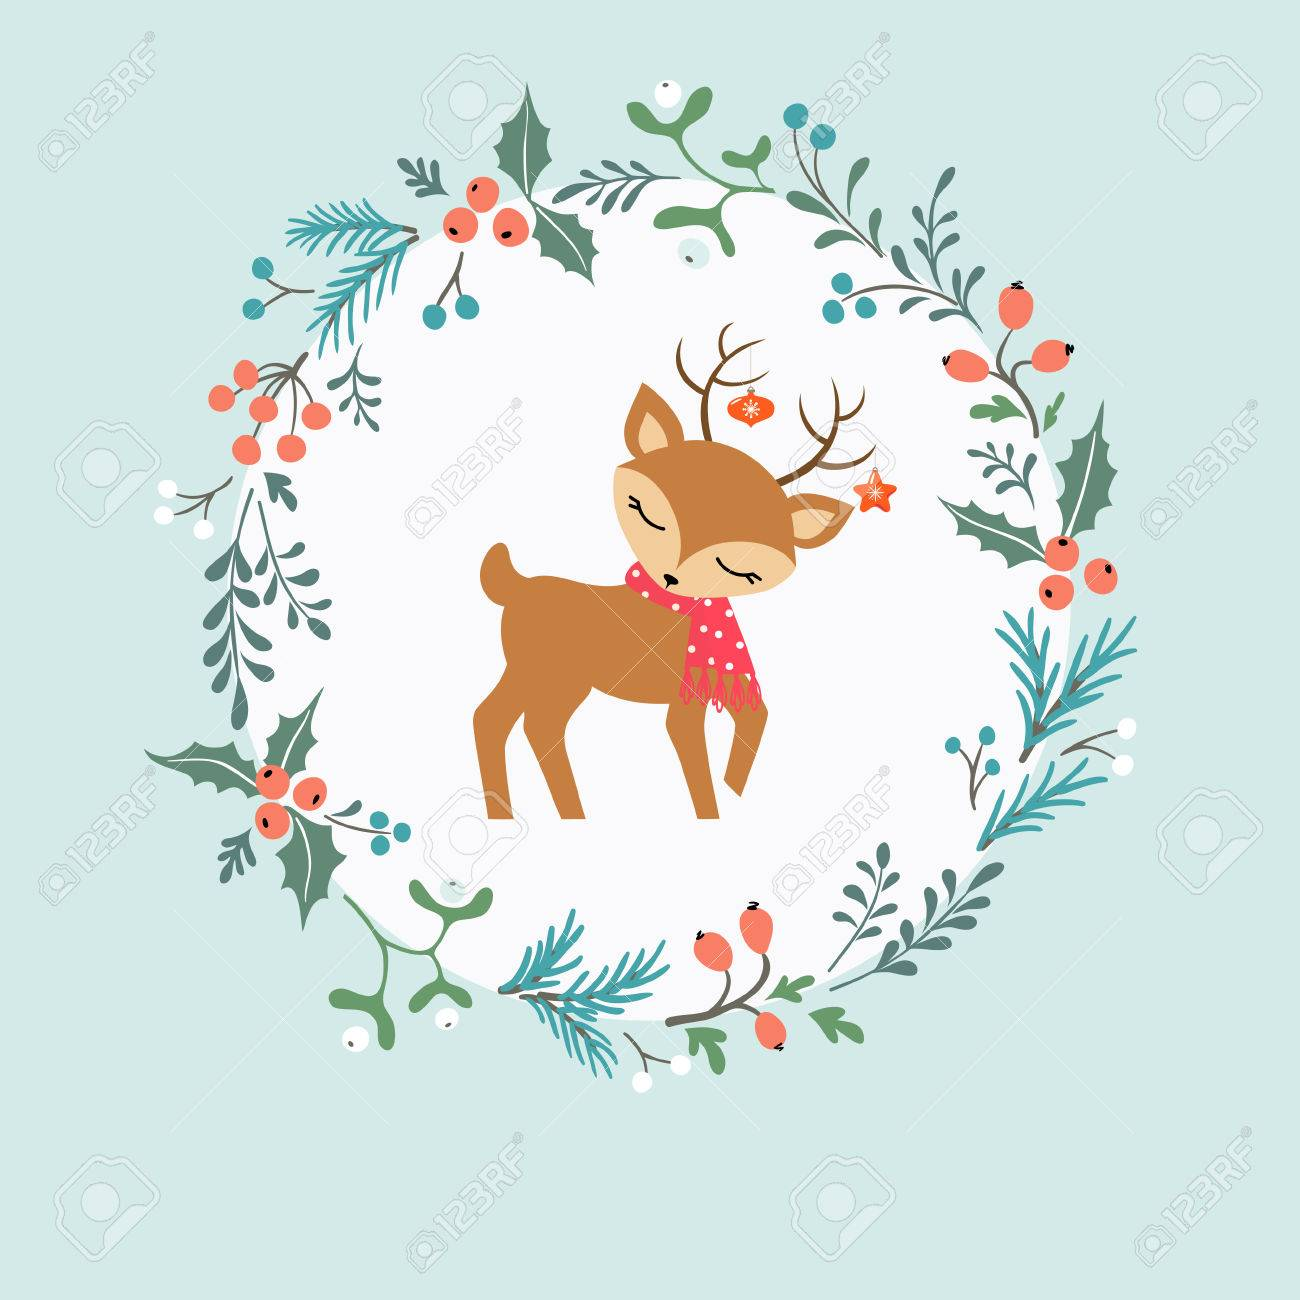 Christmas card with decorative wreath, cute deer and place for your text. - 33021419